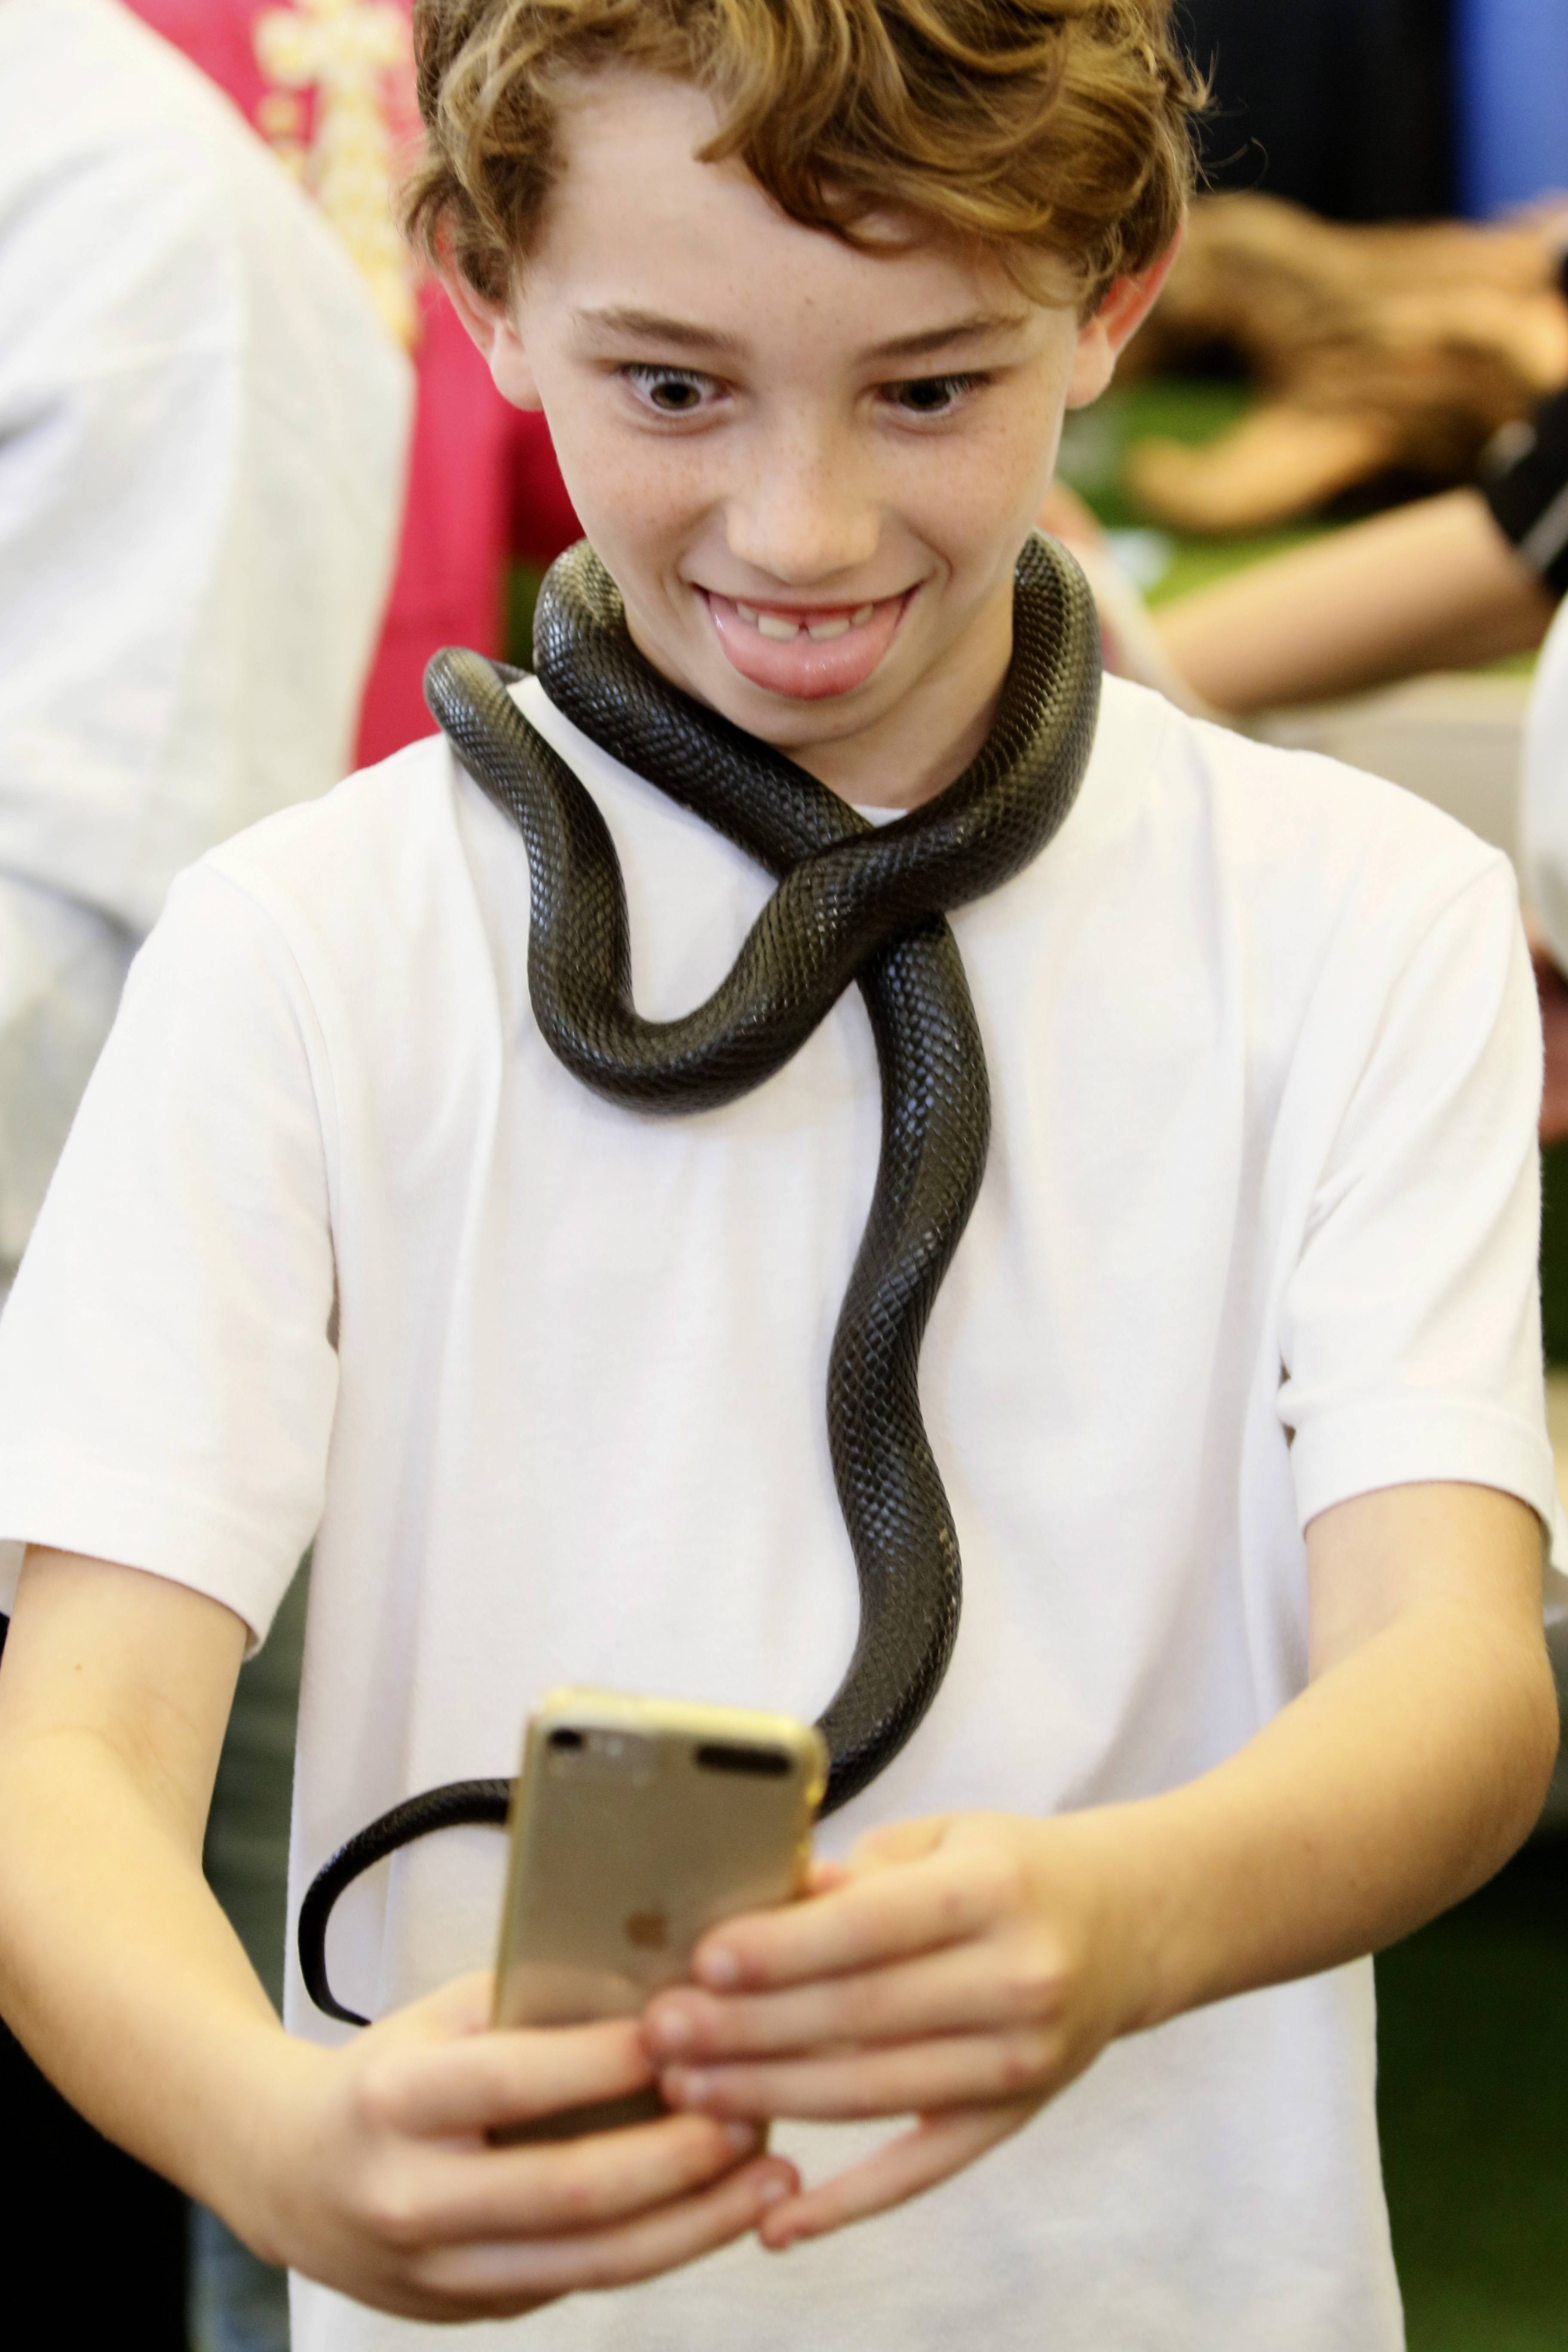 Joe Vavra, 11, of St. Charles takes a selfie with a Mexican milk snake at a previous Chicago Pet Show.